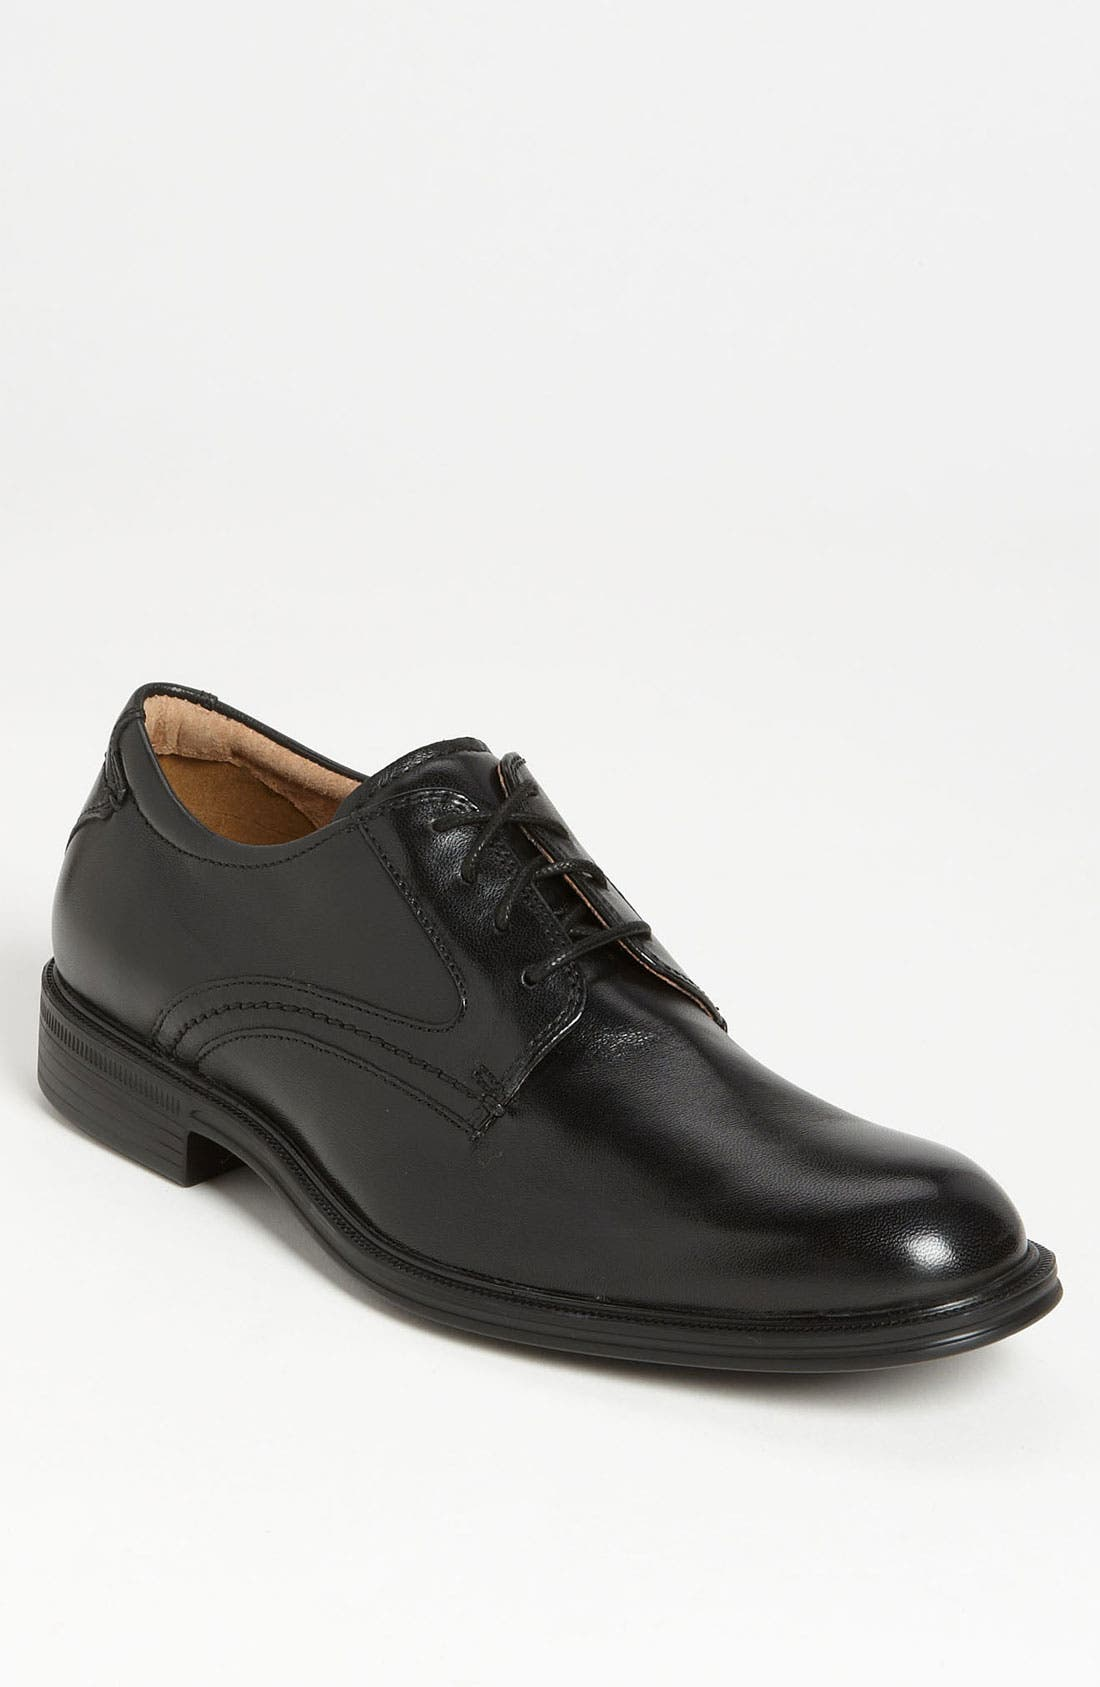 Alternate Image 1 Selected - Florsheim 'Network' Plain Toe Derby